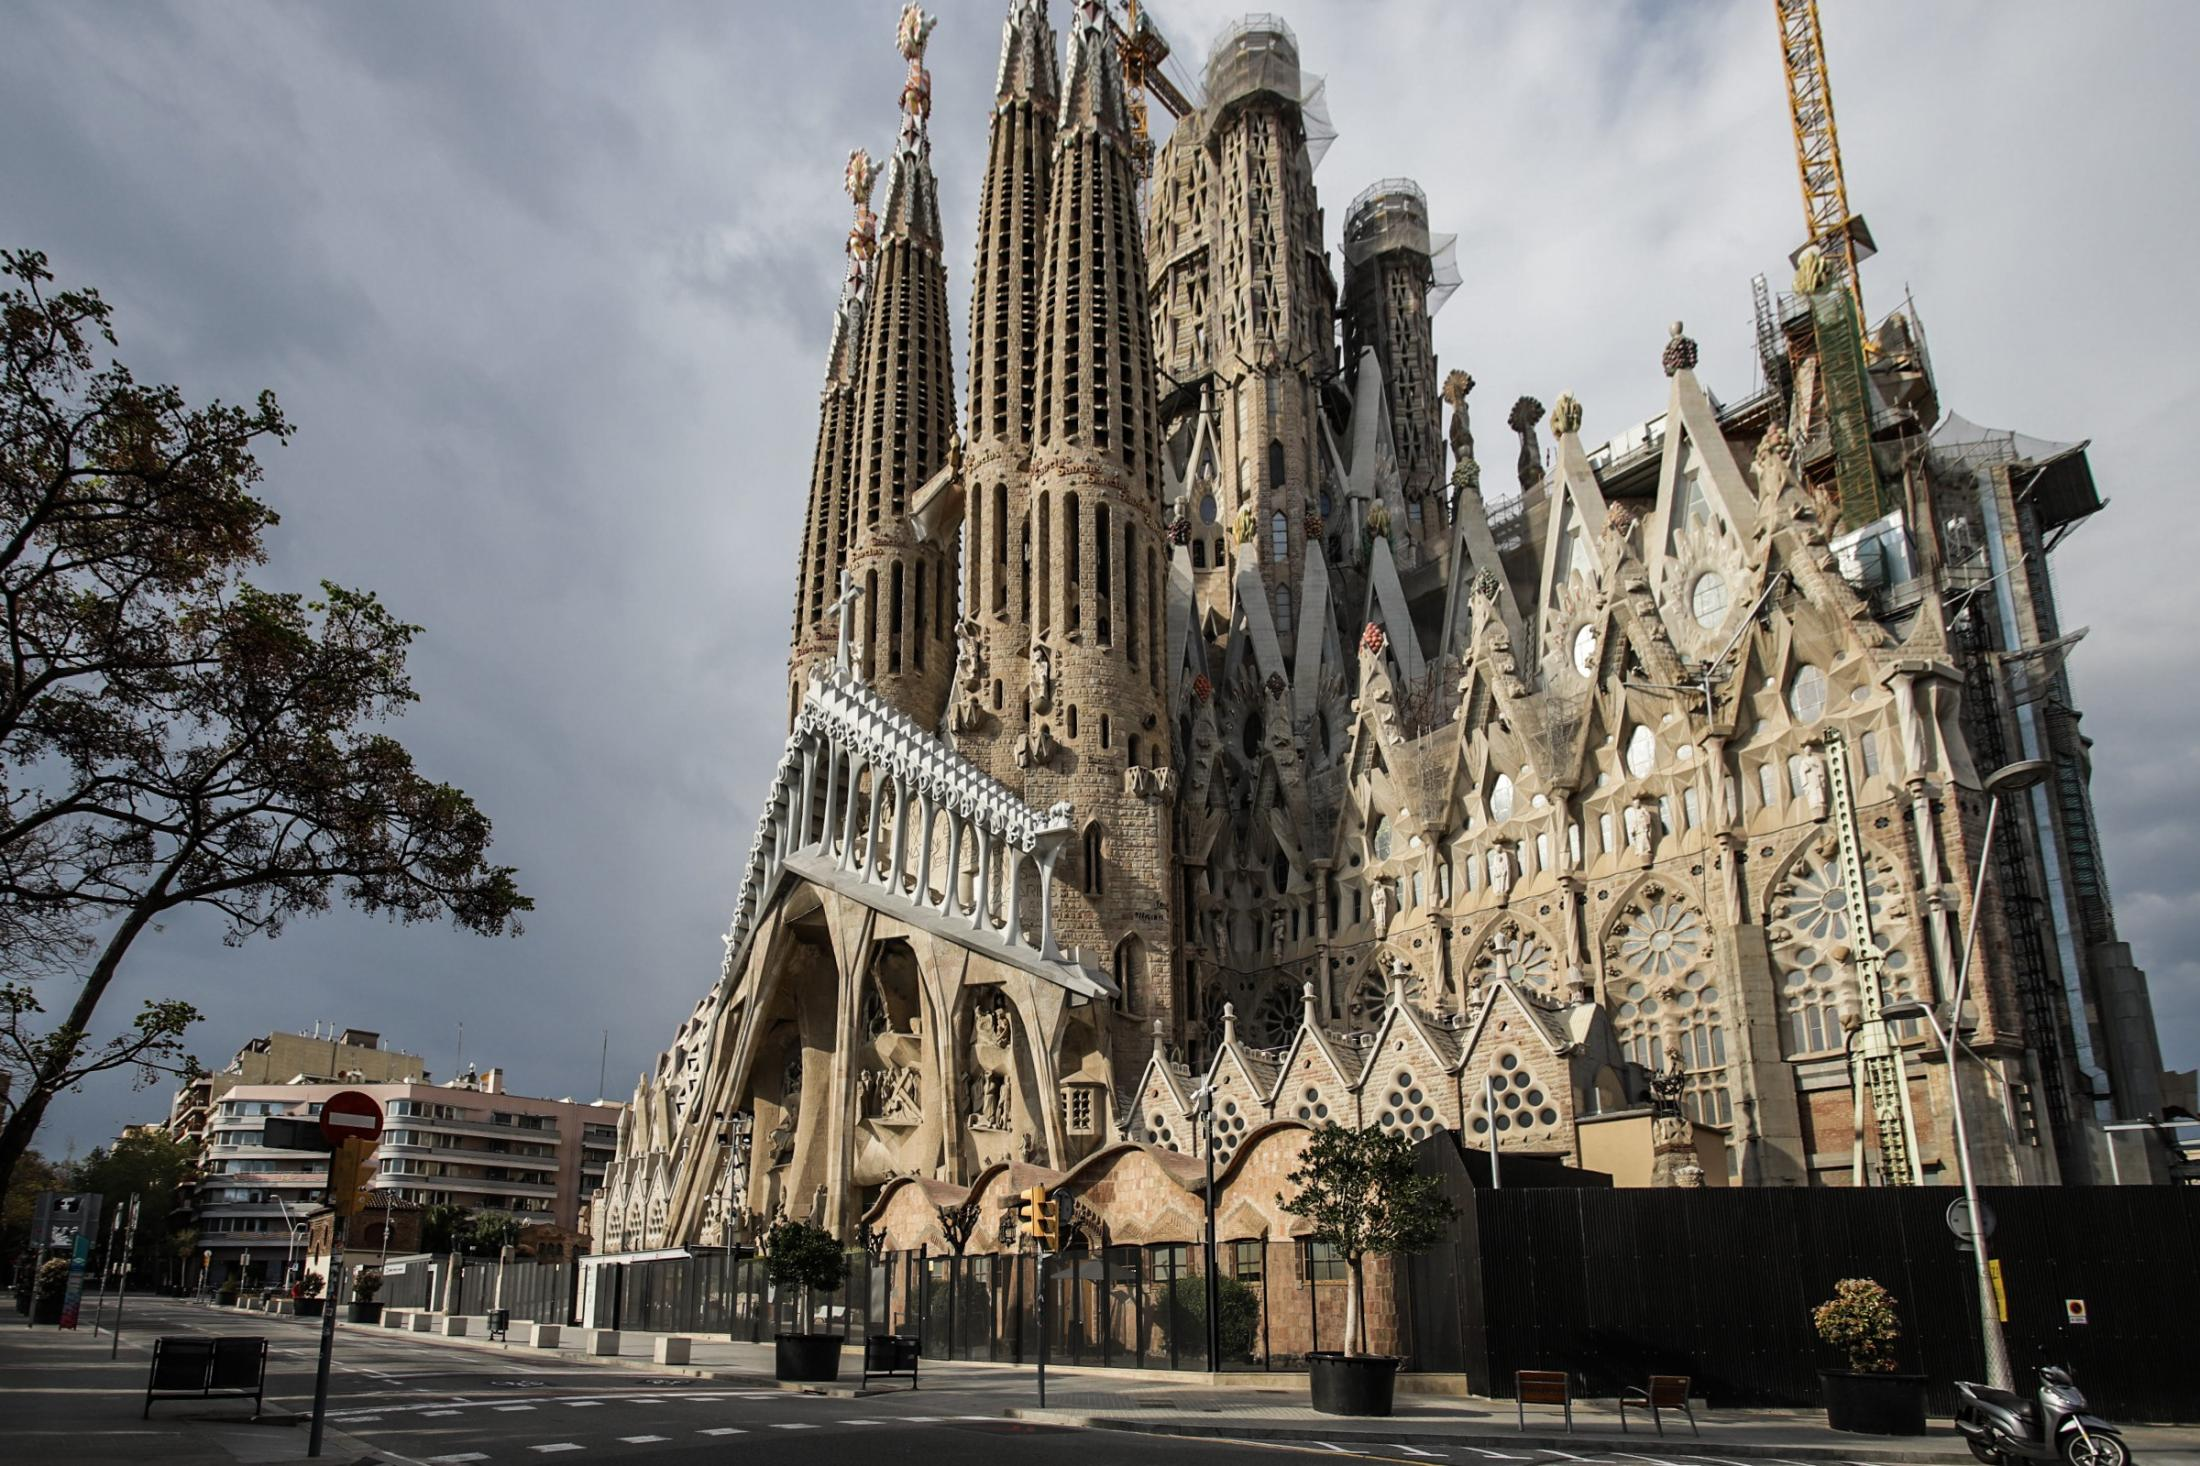 La Sagrada Familia surfing covid 19 pandemy. The public space is no more occupied by tourists